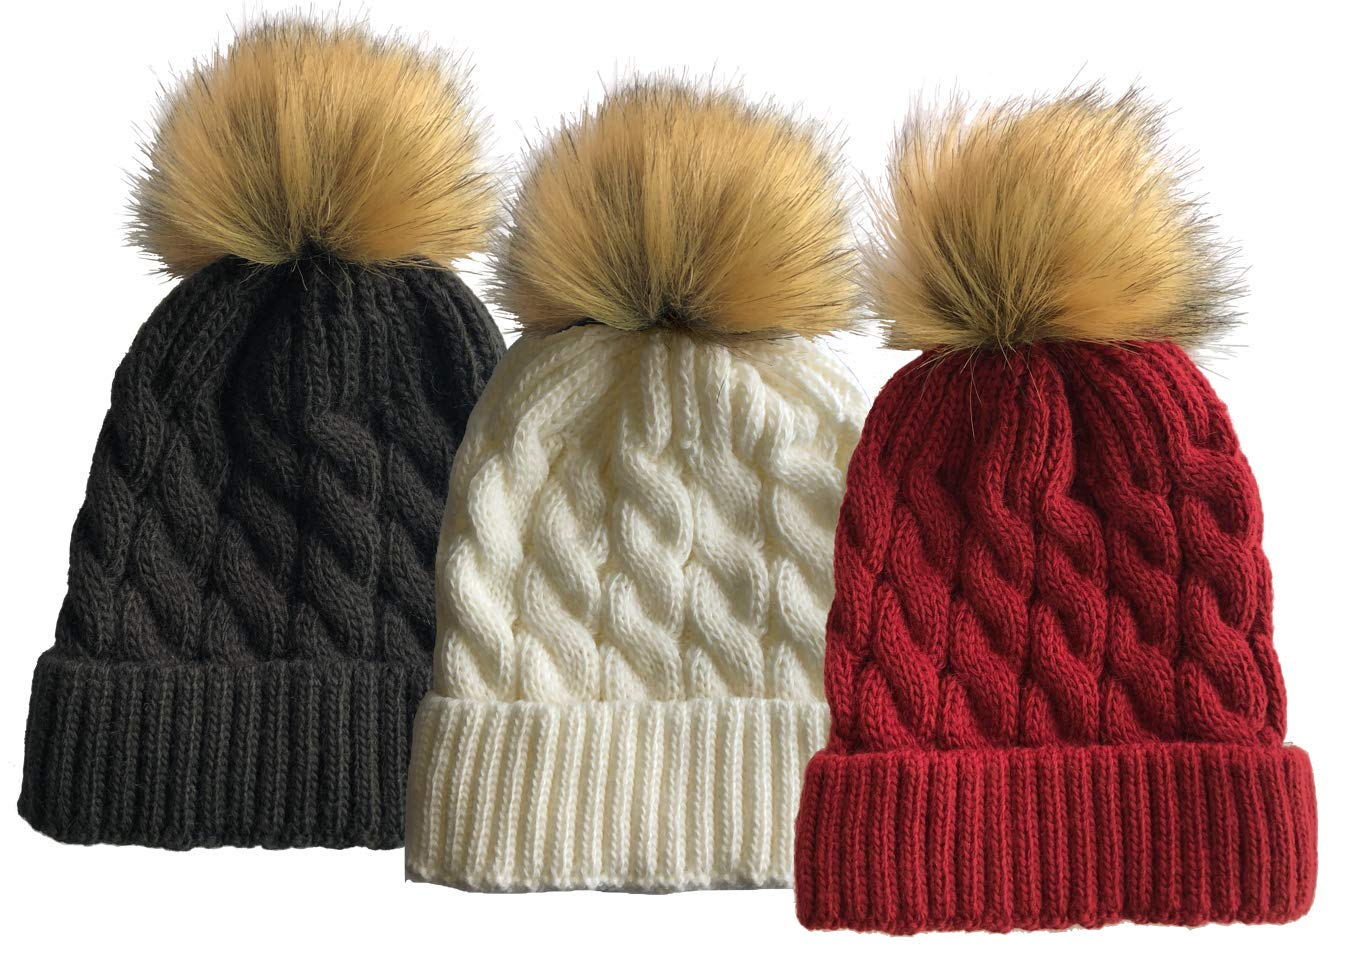 SOFT GRIP Women Cable Knit Slouchy Thick Winter Hat Beanie Pom Pom (Black & White & Burgundy (3 Pack))